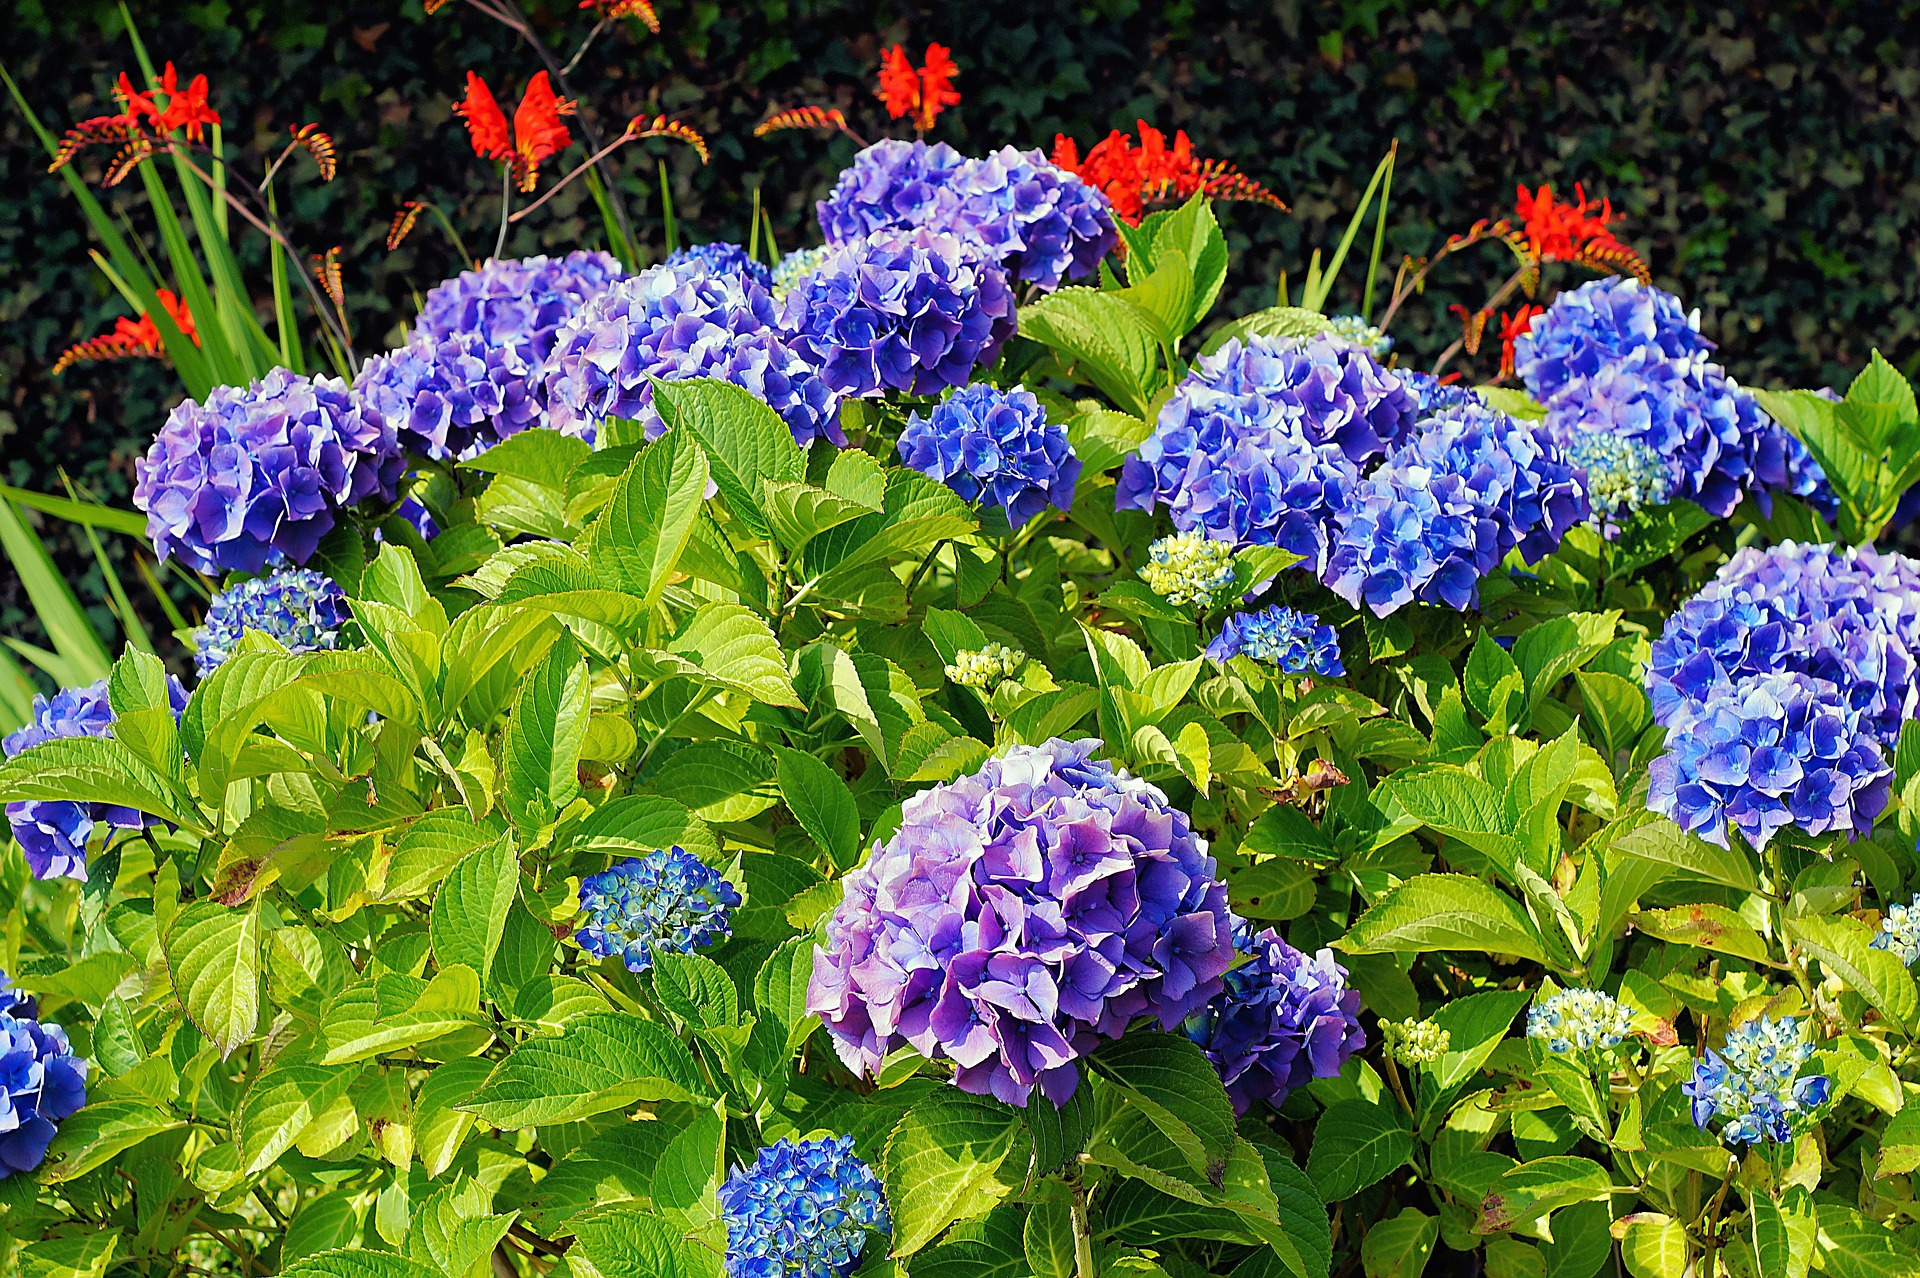 hydrangea care, hydrangea color, growing hydrangas